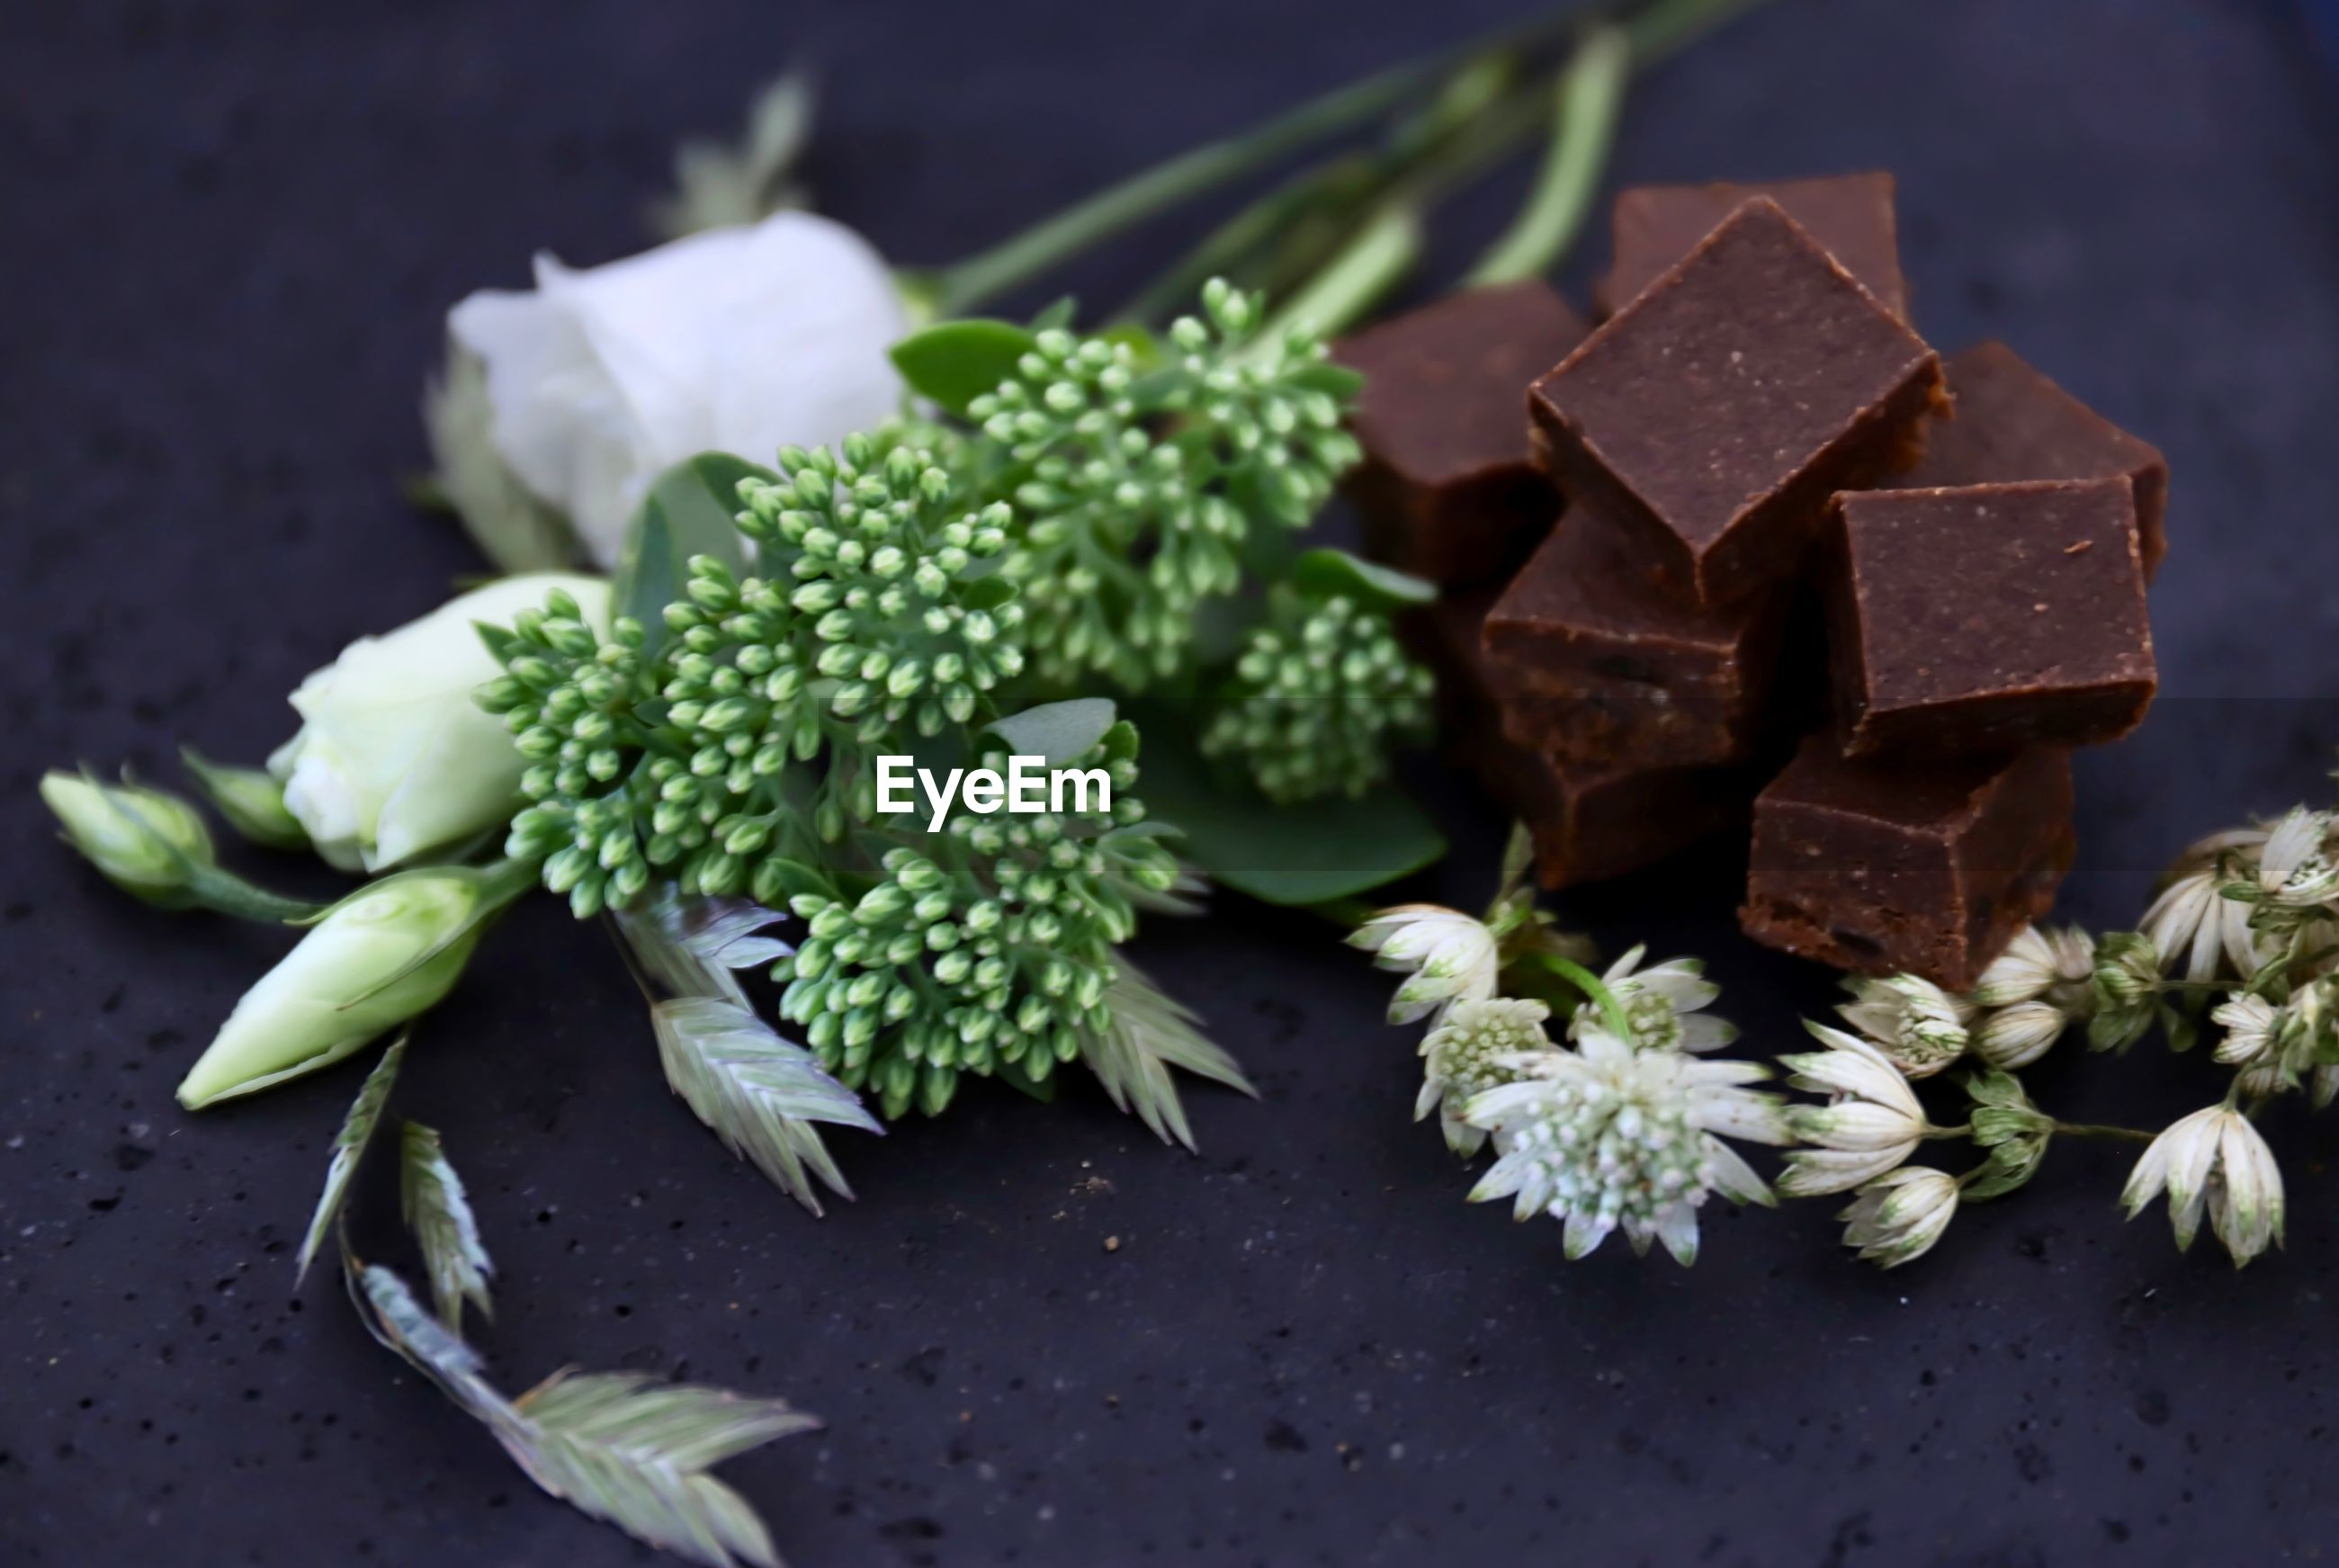 Close-up of chocolates by flowers on table